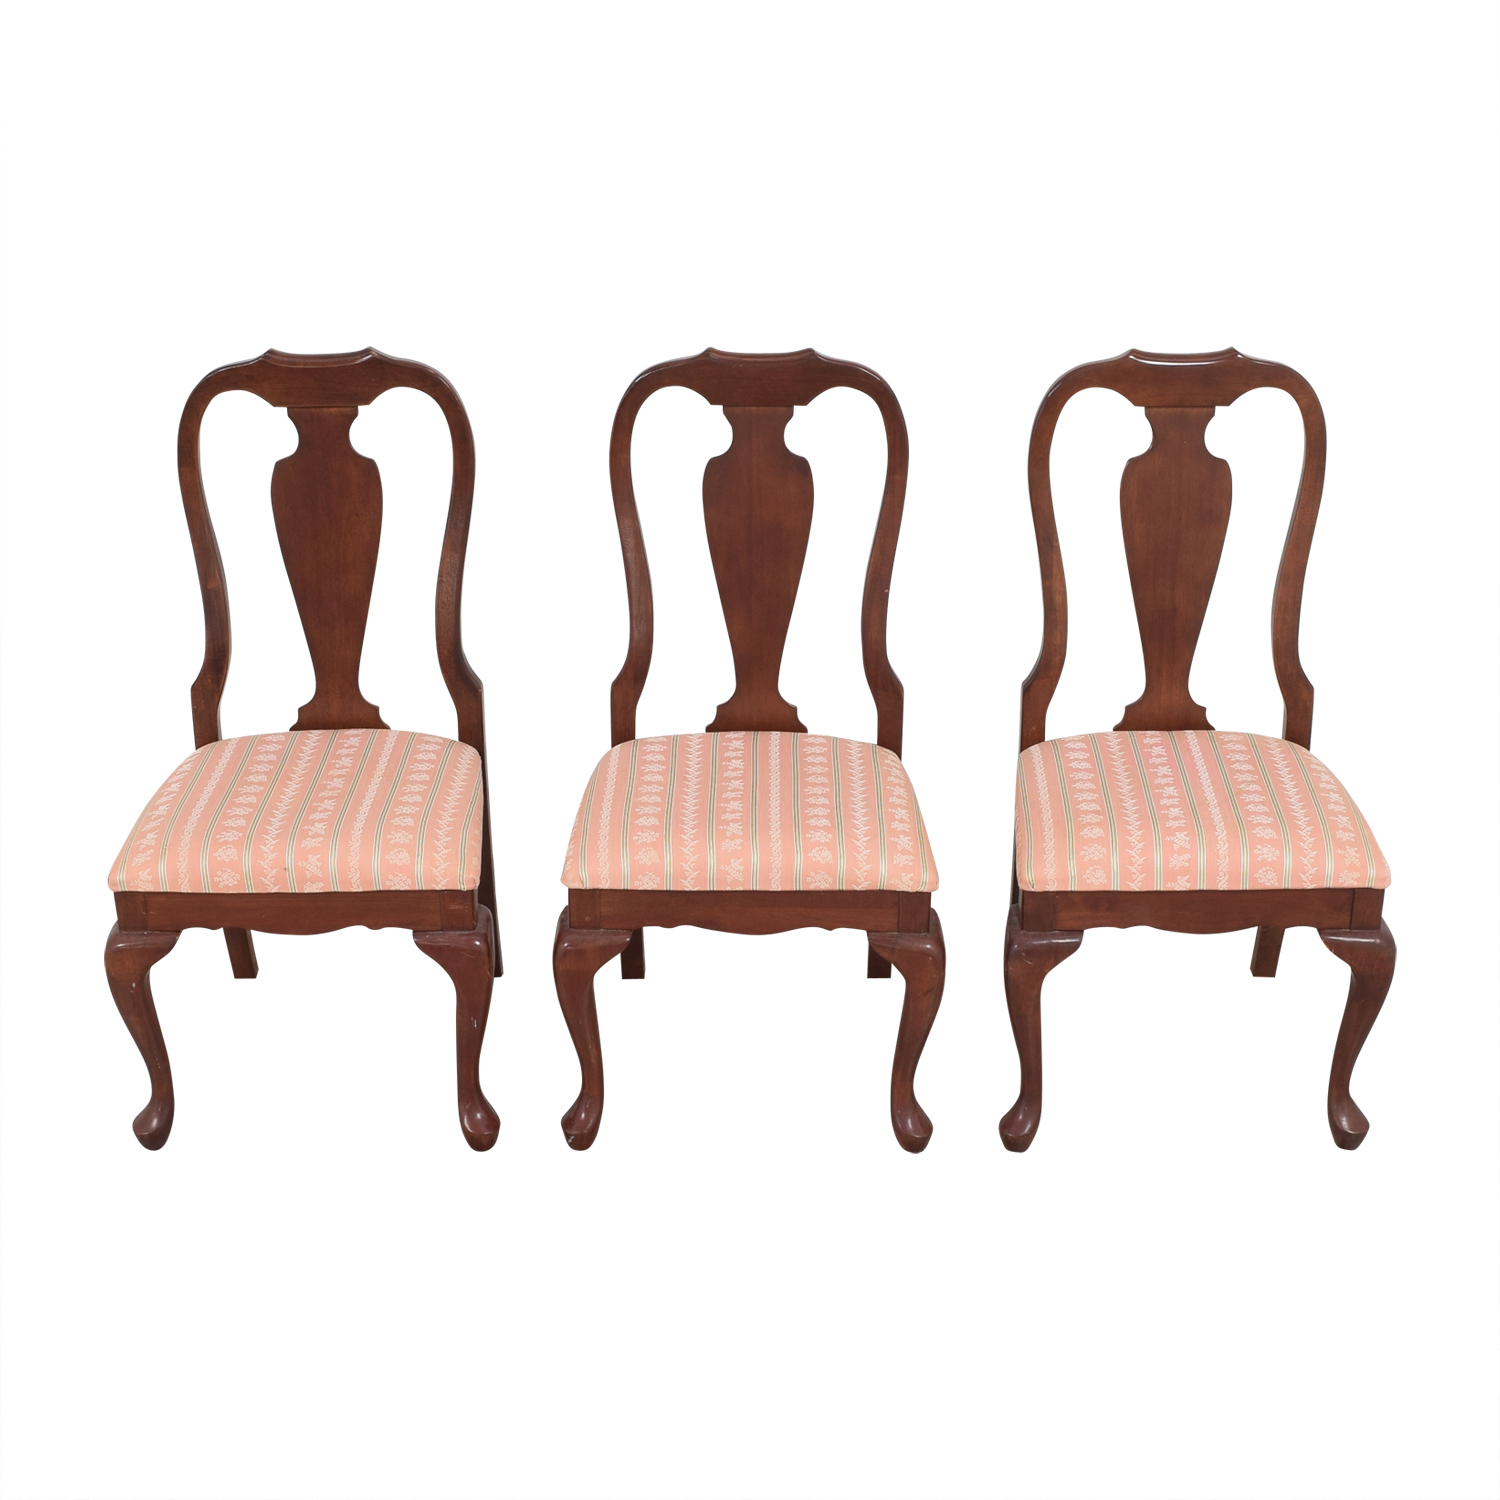 Upholstered Dining Chairs pink and brown